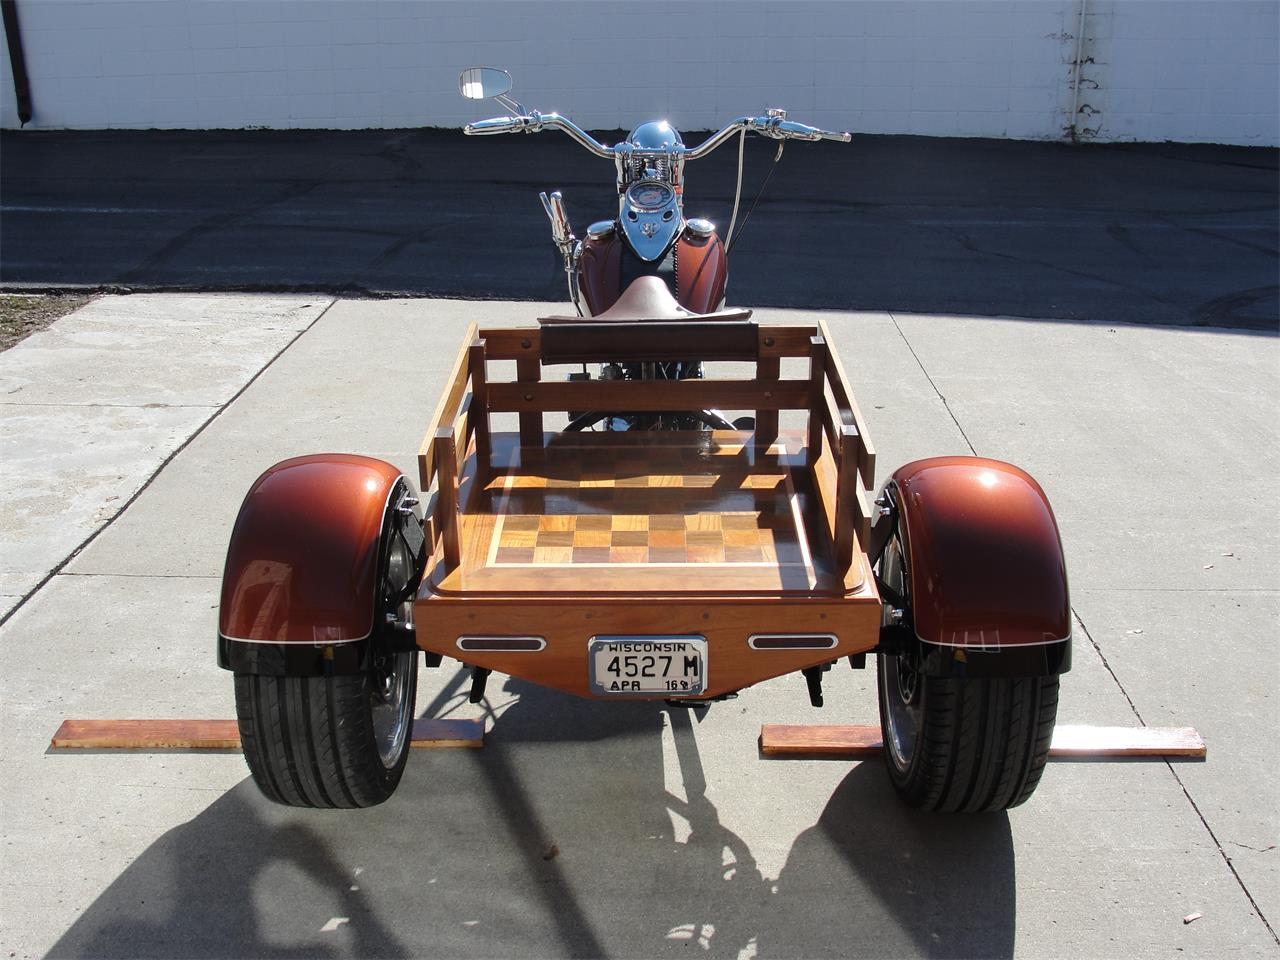 Large Picture of Classic '66 Harley-Davidson Servi-Car located in Wisconsin - $28,500.00 - HHFZ